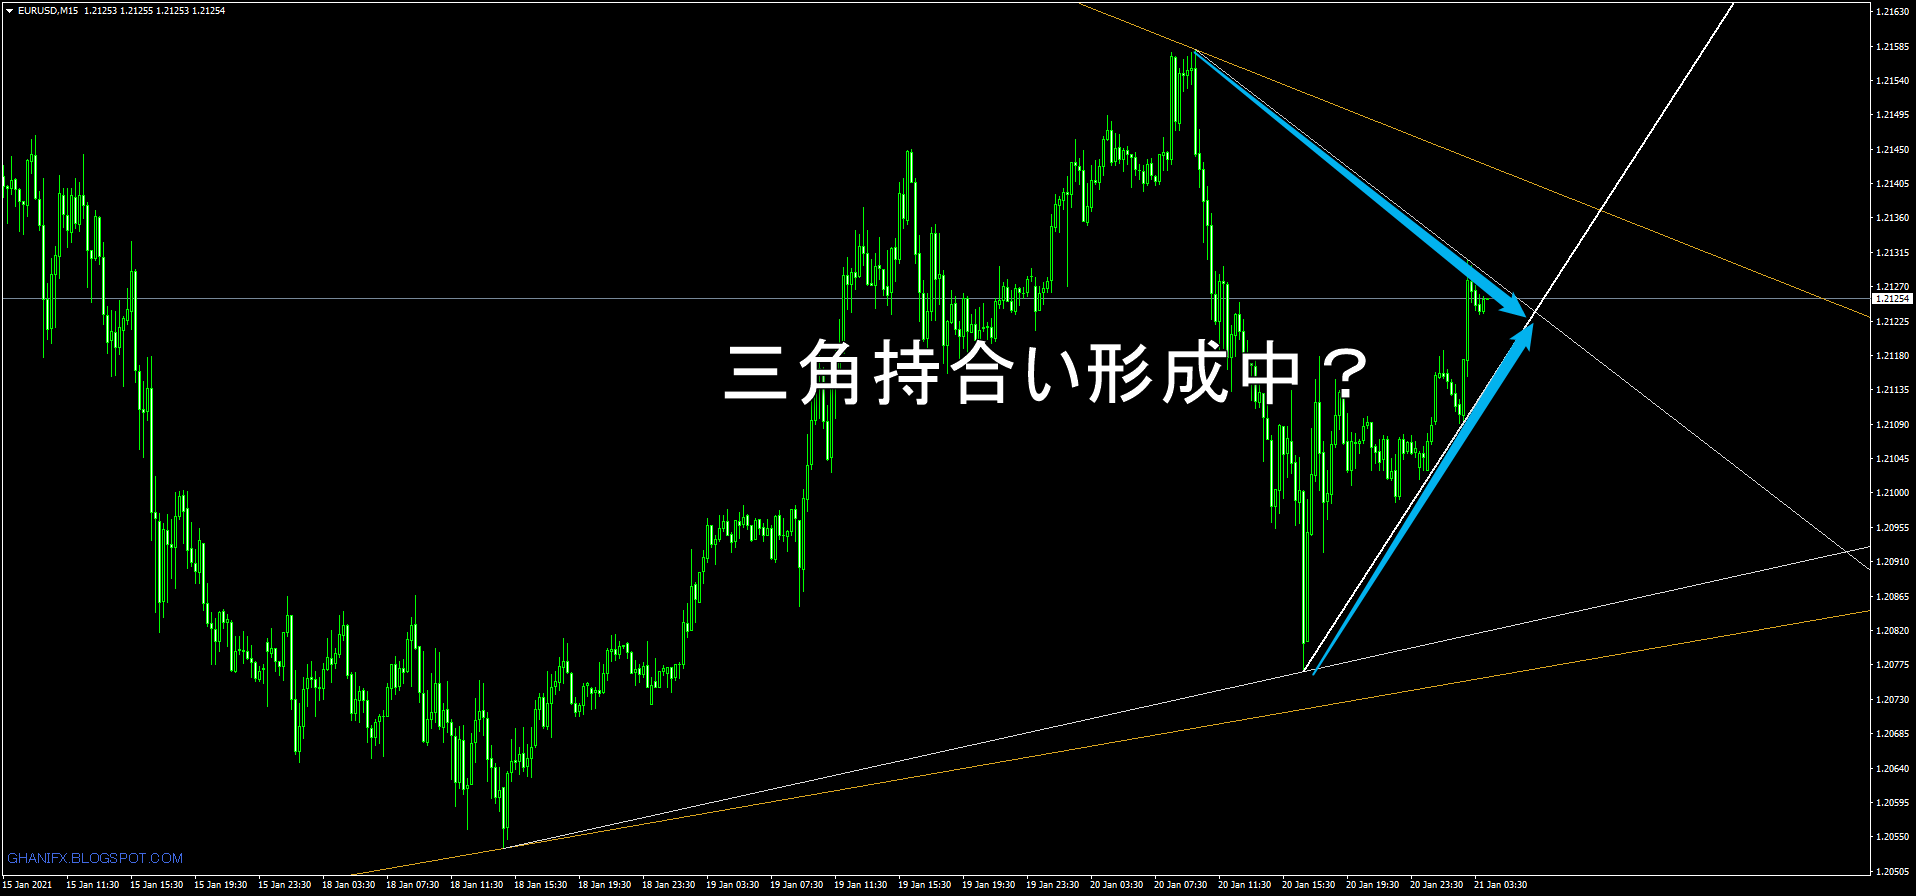 GhaniFx_Auto Trend Lines